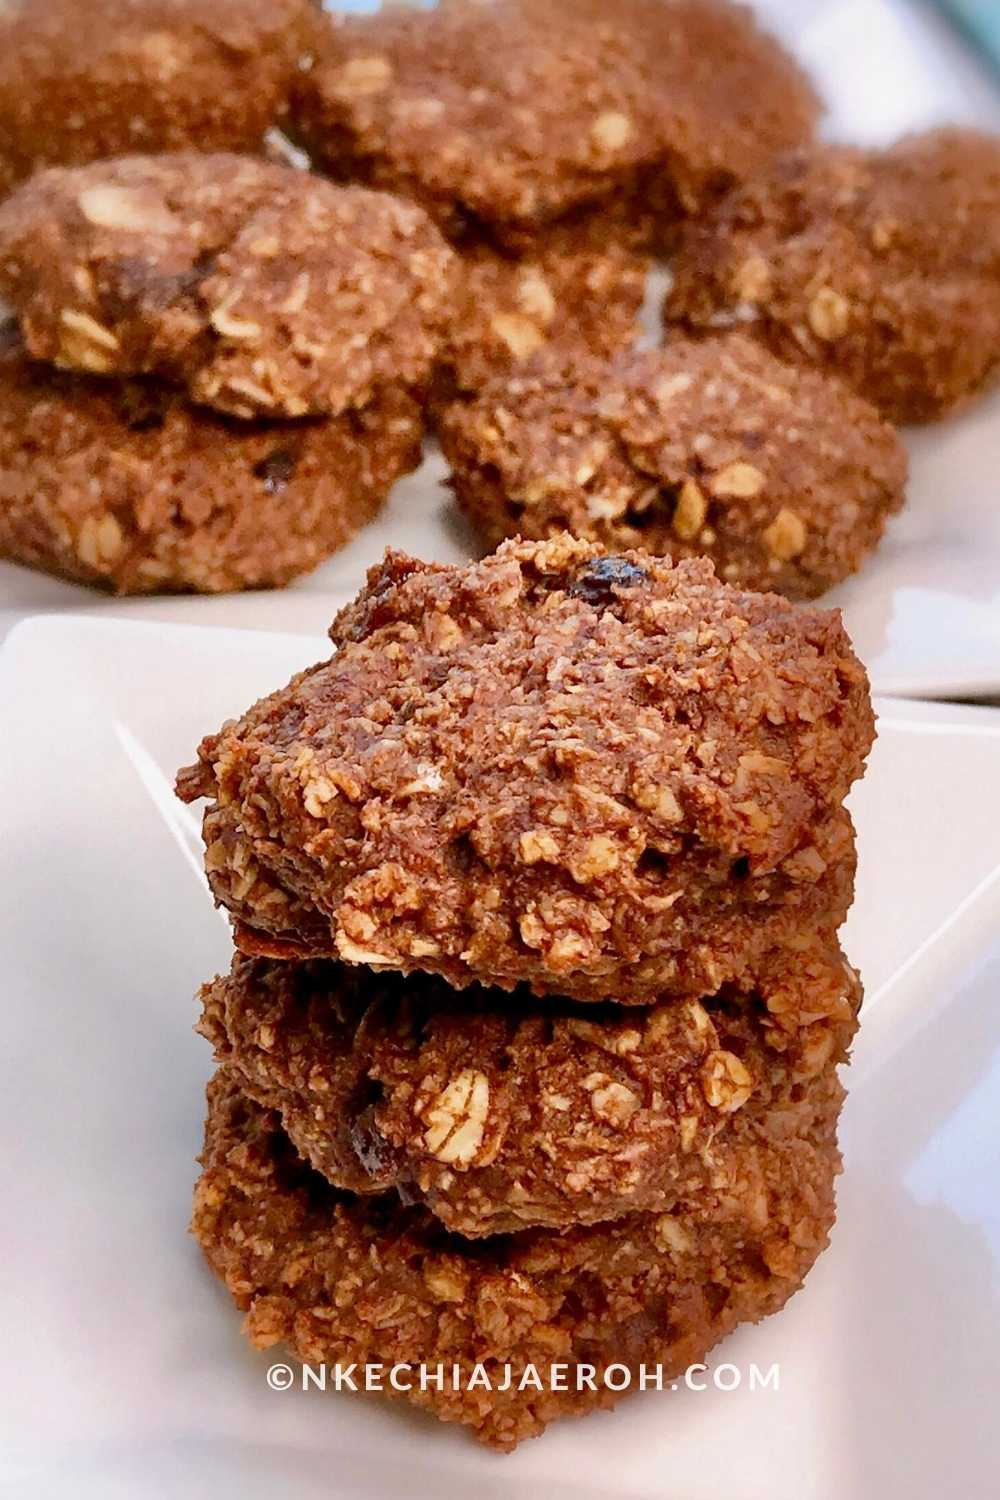 Healthy Vegan Almond Oats Cacao Cookie. Low carb, Refined Sugar-free, Gluten-free, Paleo-friendly Breakfast Cookies.